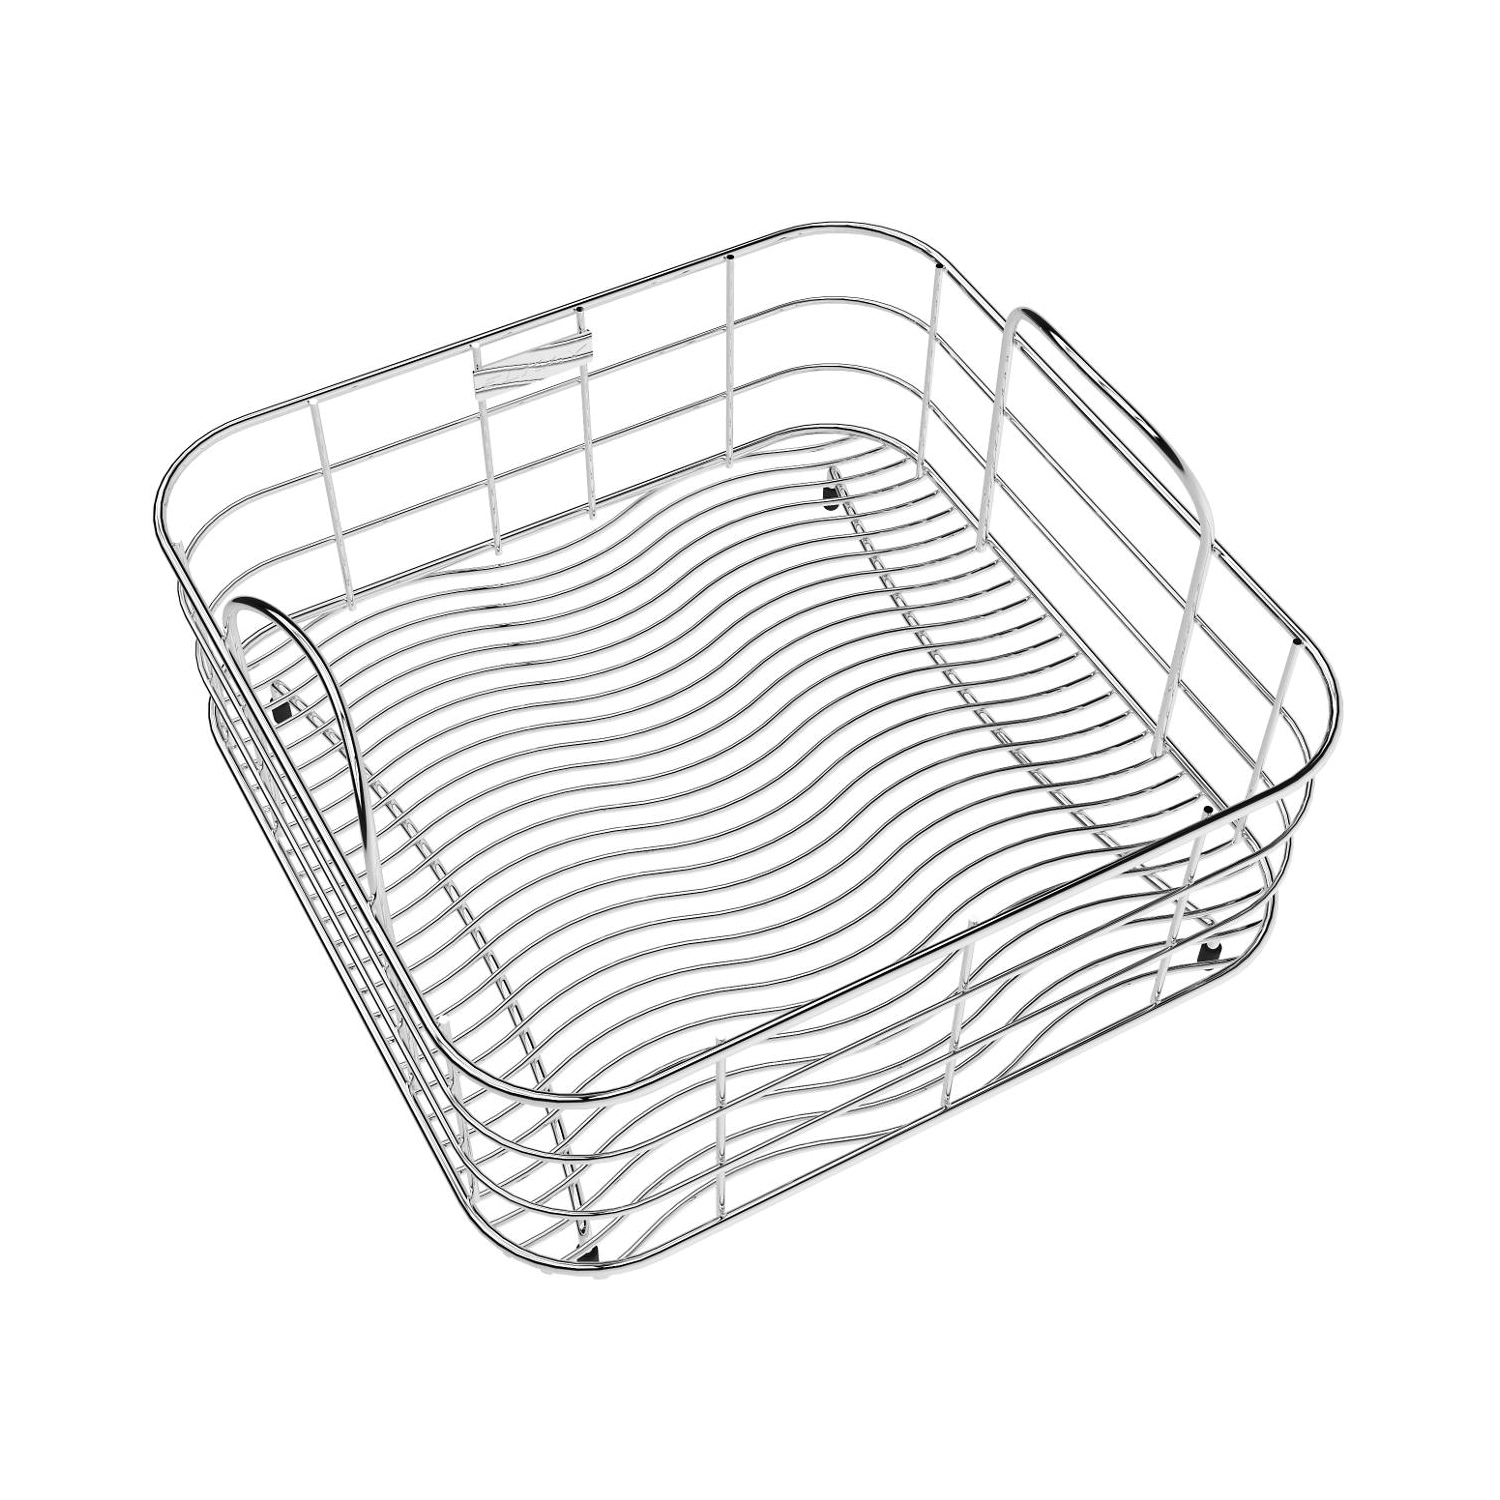 Elkay LKWRB1414SS Rinsing Basket, 13 in L x 13 in W x 7 in H, Rectangular, Bright Polished